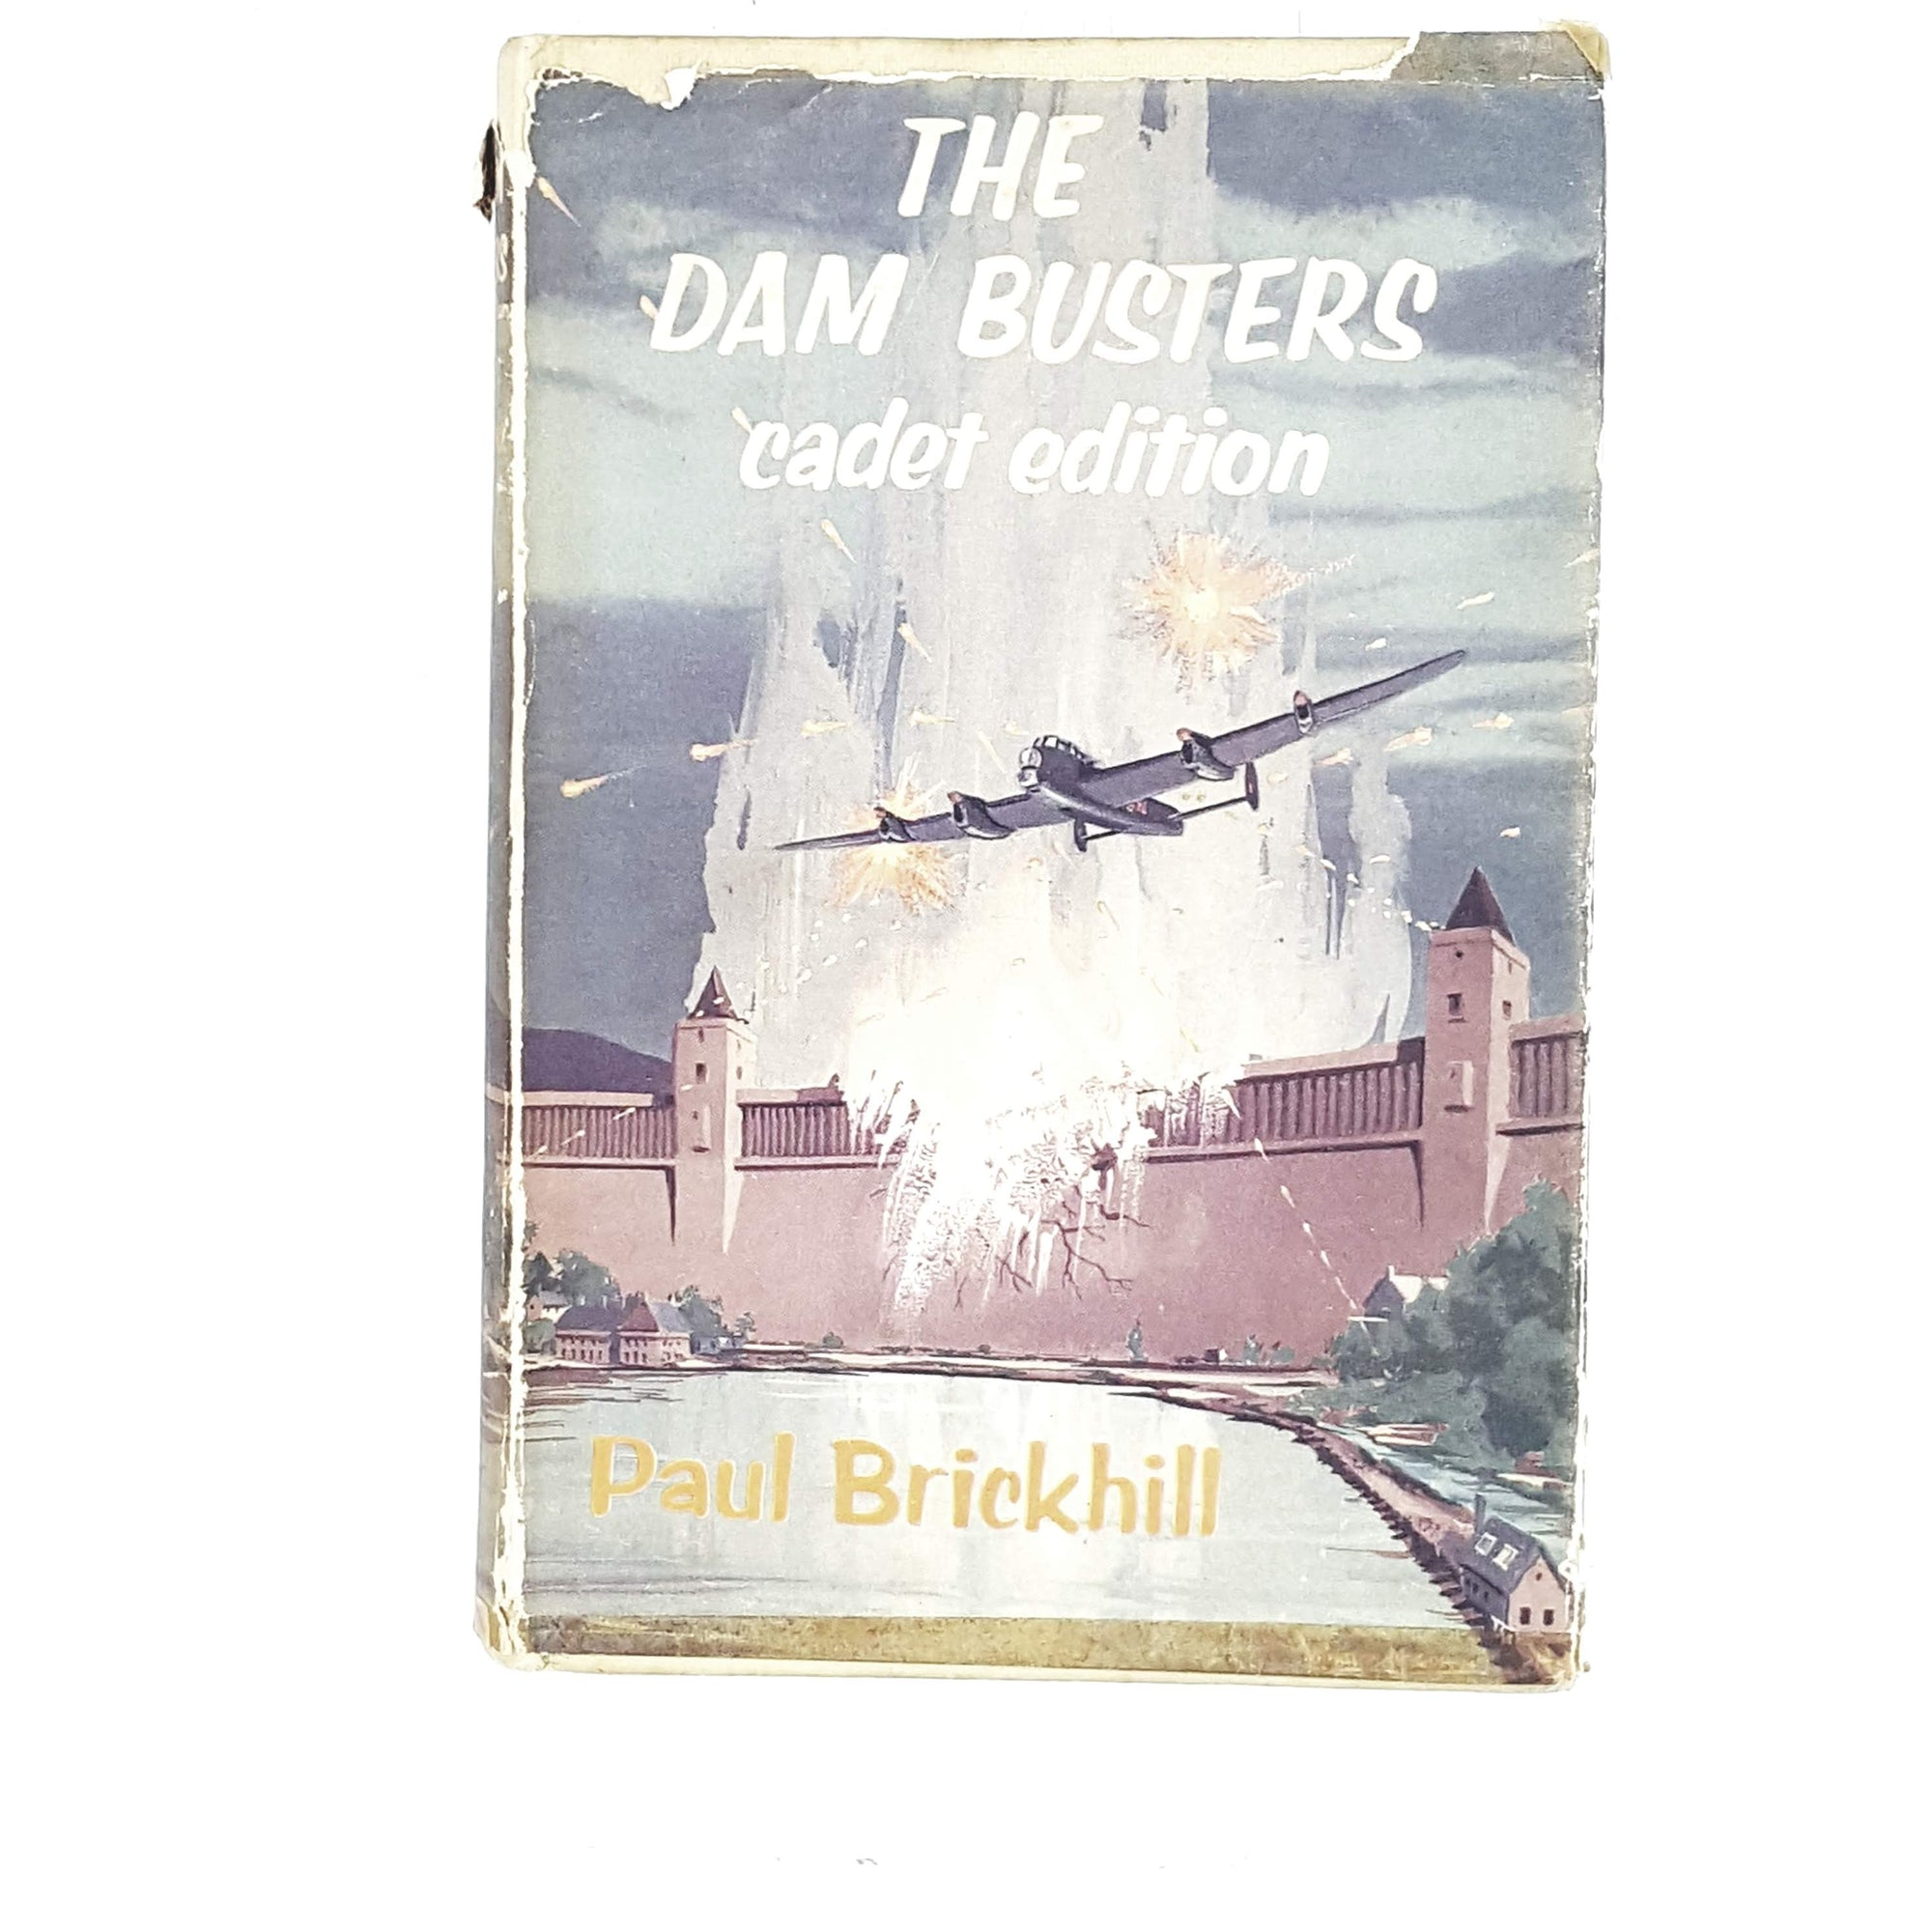 The Dam Busters by Paul Brickhill 1958